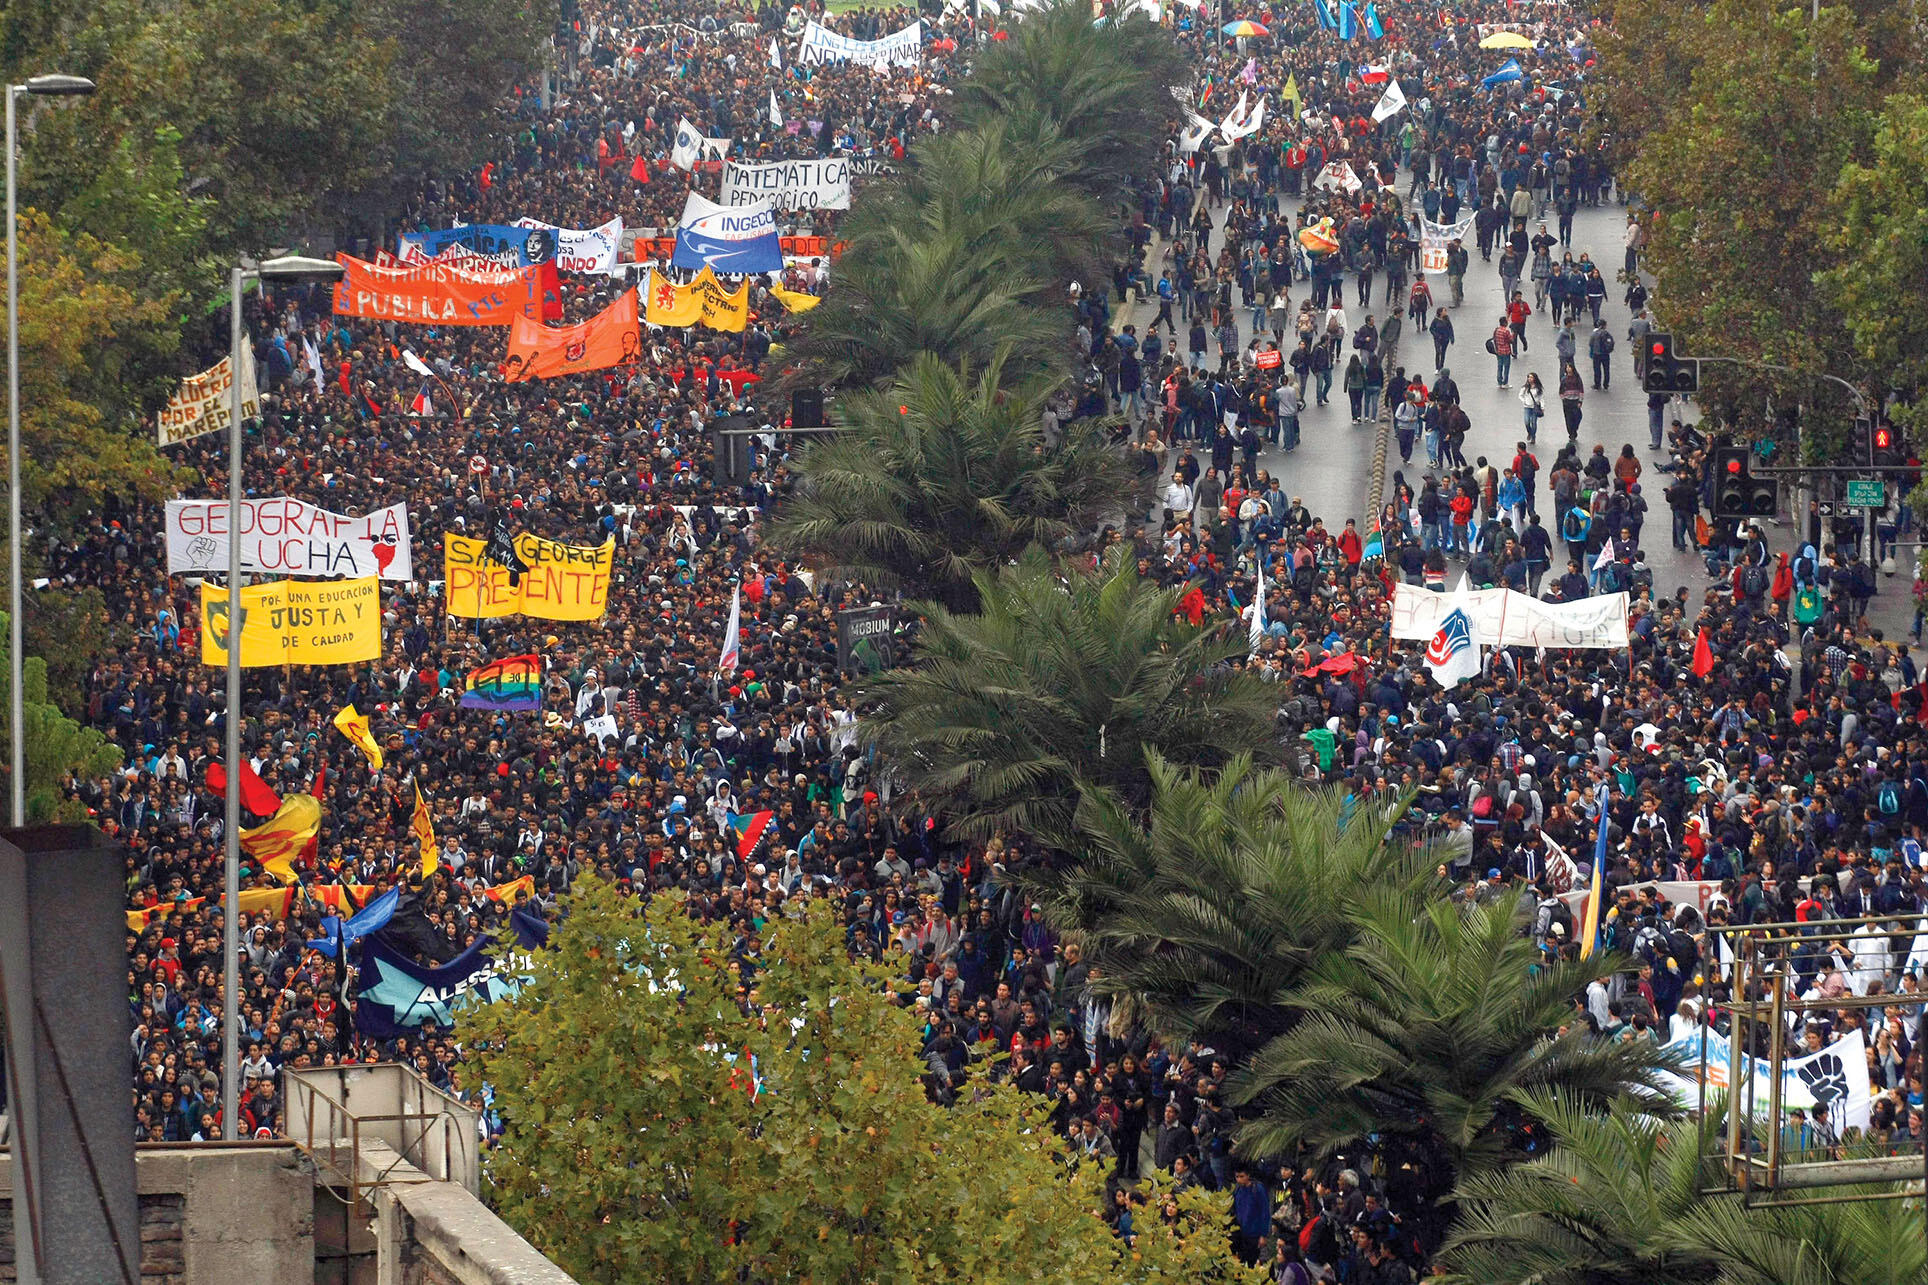 Differences over educational policy led students to Chile's streets again in 2013. (Photo by Luis Hidalgo/AP Photo.)